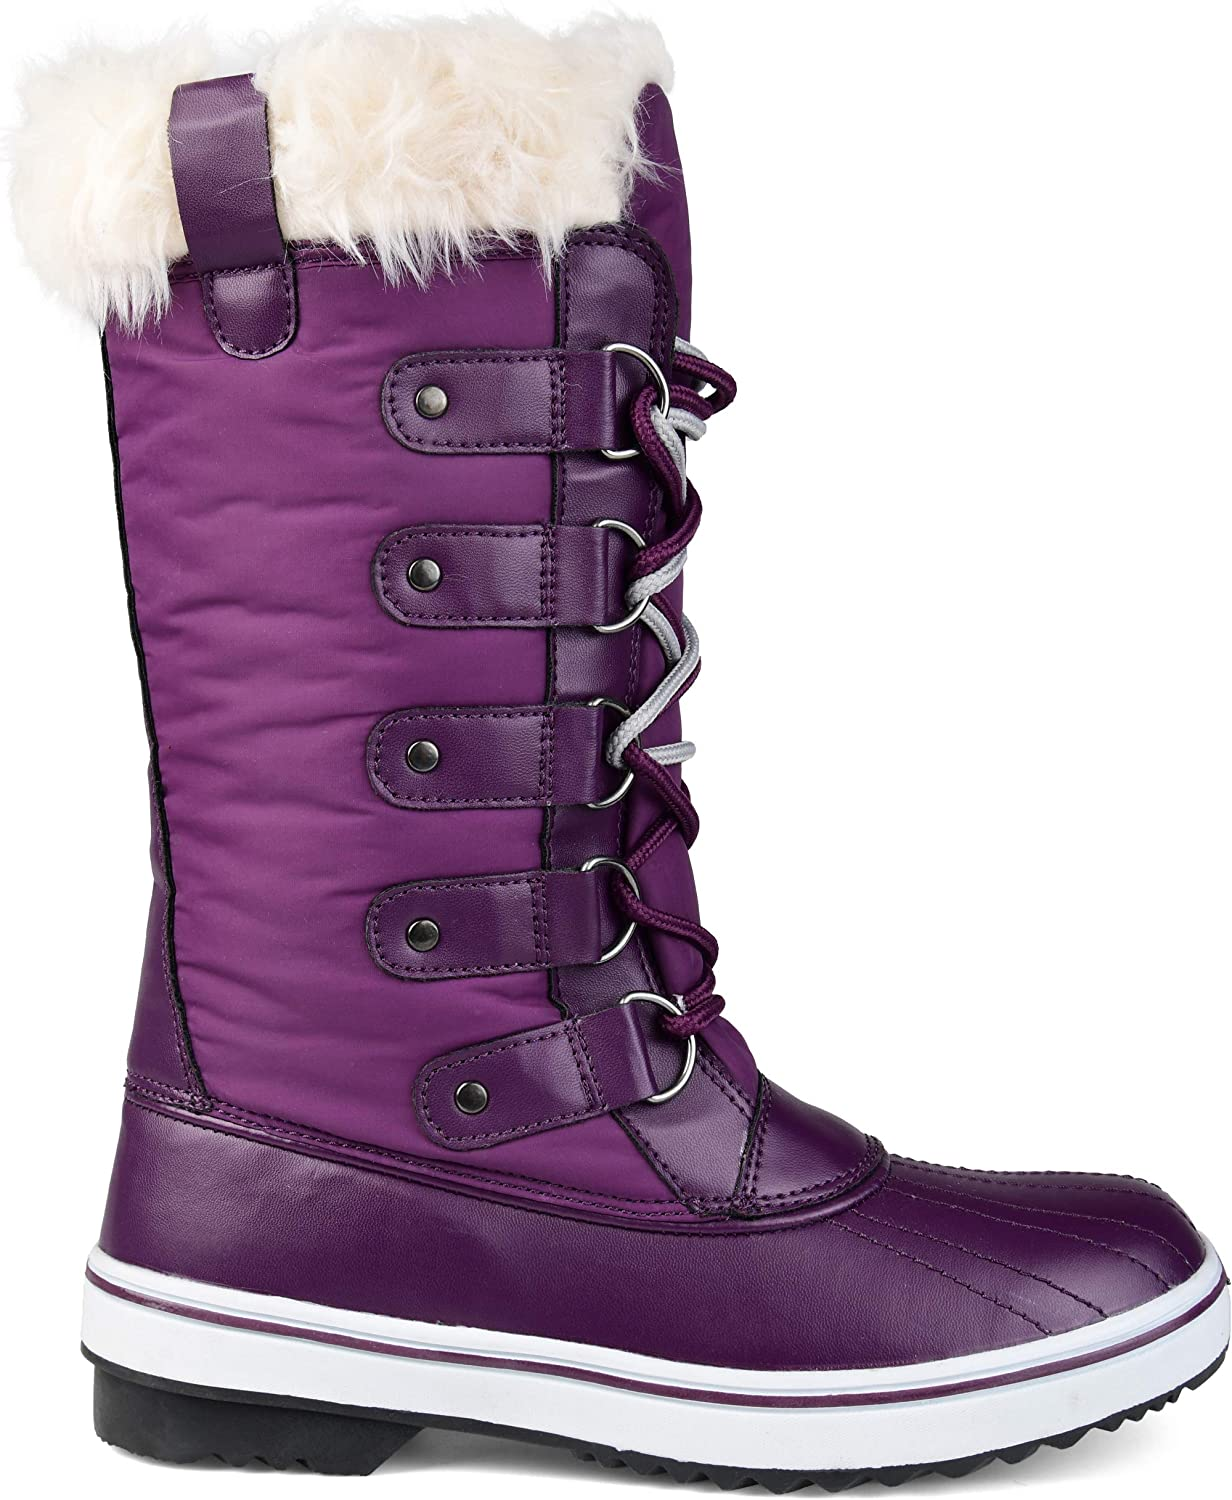 Brinley Co. Womens Lined Lace-up Snow Boot Purple, 7 Regular US